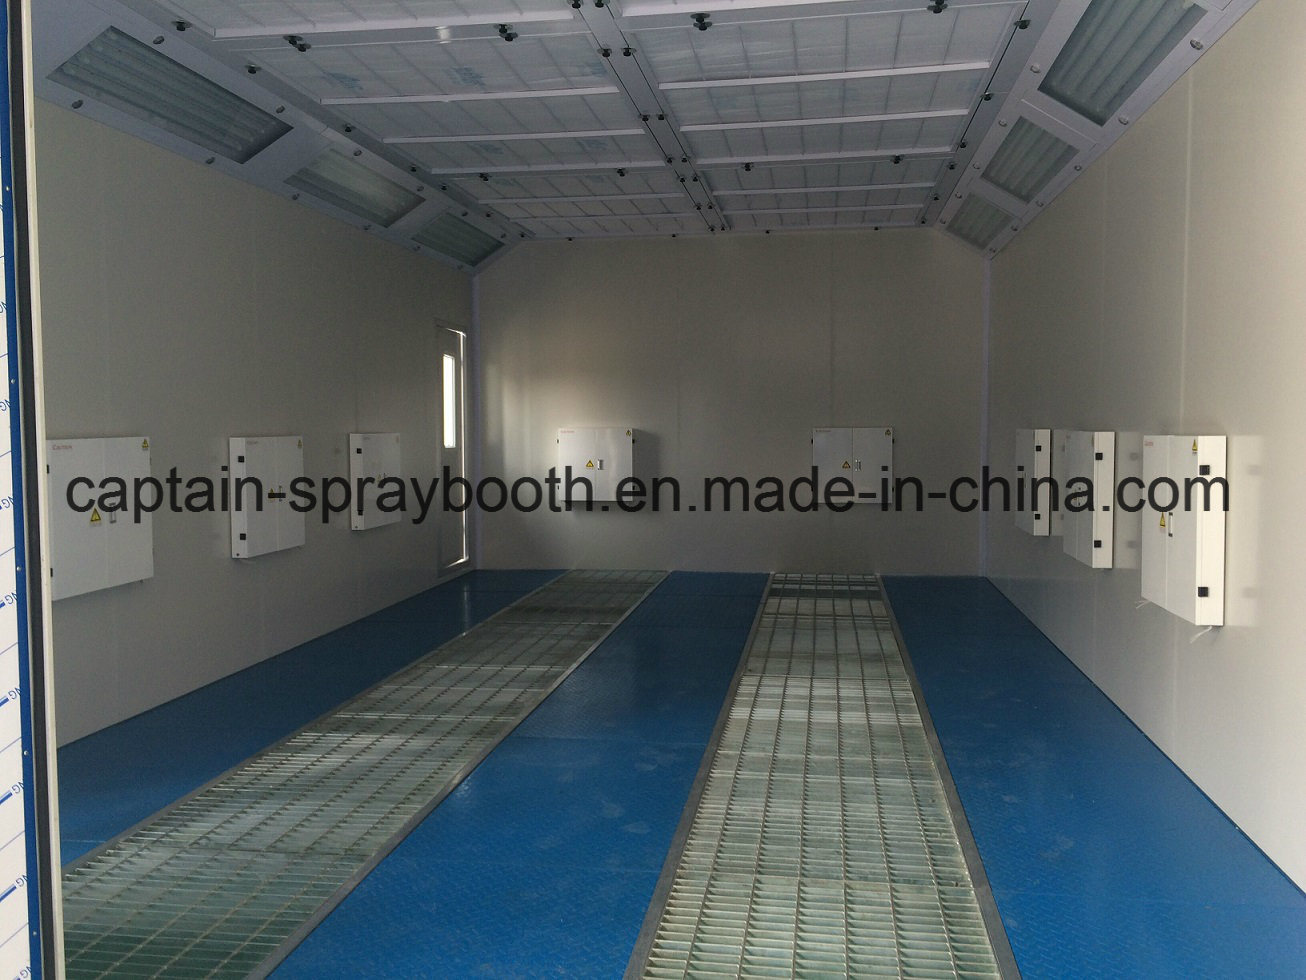 Good Quality Automotive Paint Spray Booth /Spray Paint Booth Car Spray Booth with Good Price